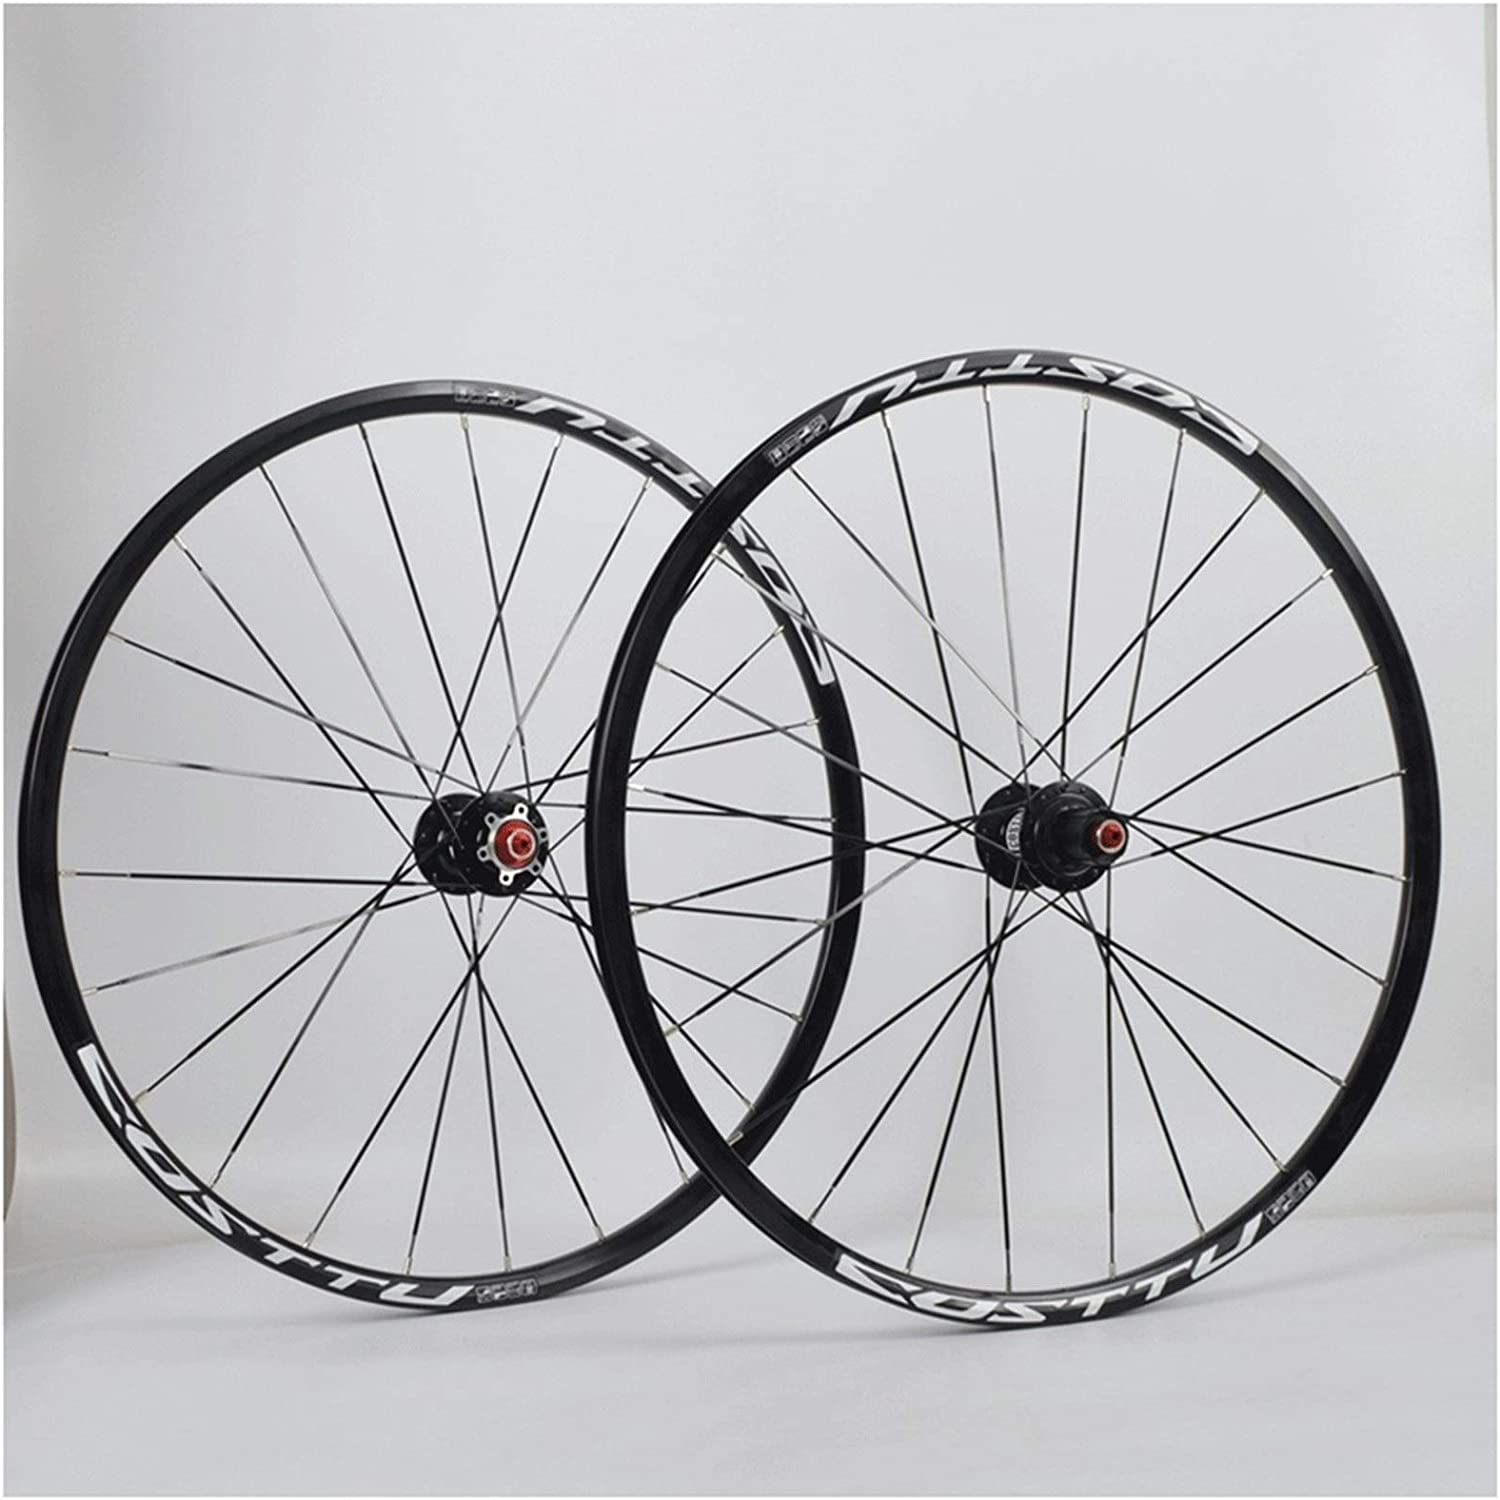 GXFWJD Bicycle Wheelset MTB 26 Disc B Inch 27.5 Outlet ☆ Austin Mall Free Shipping